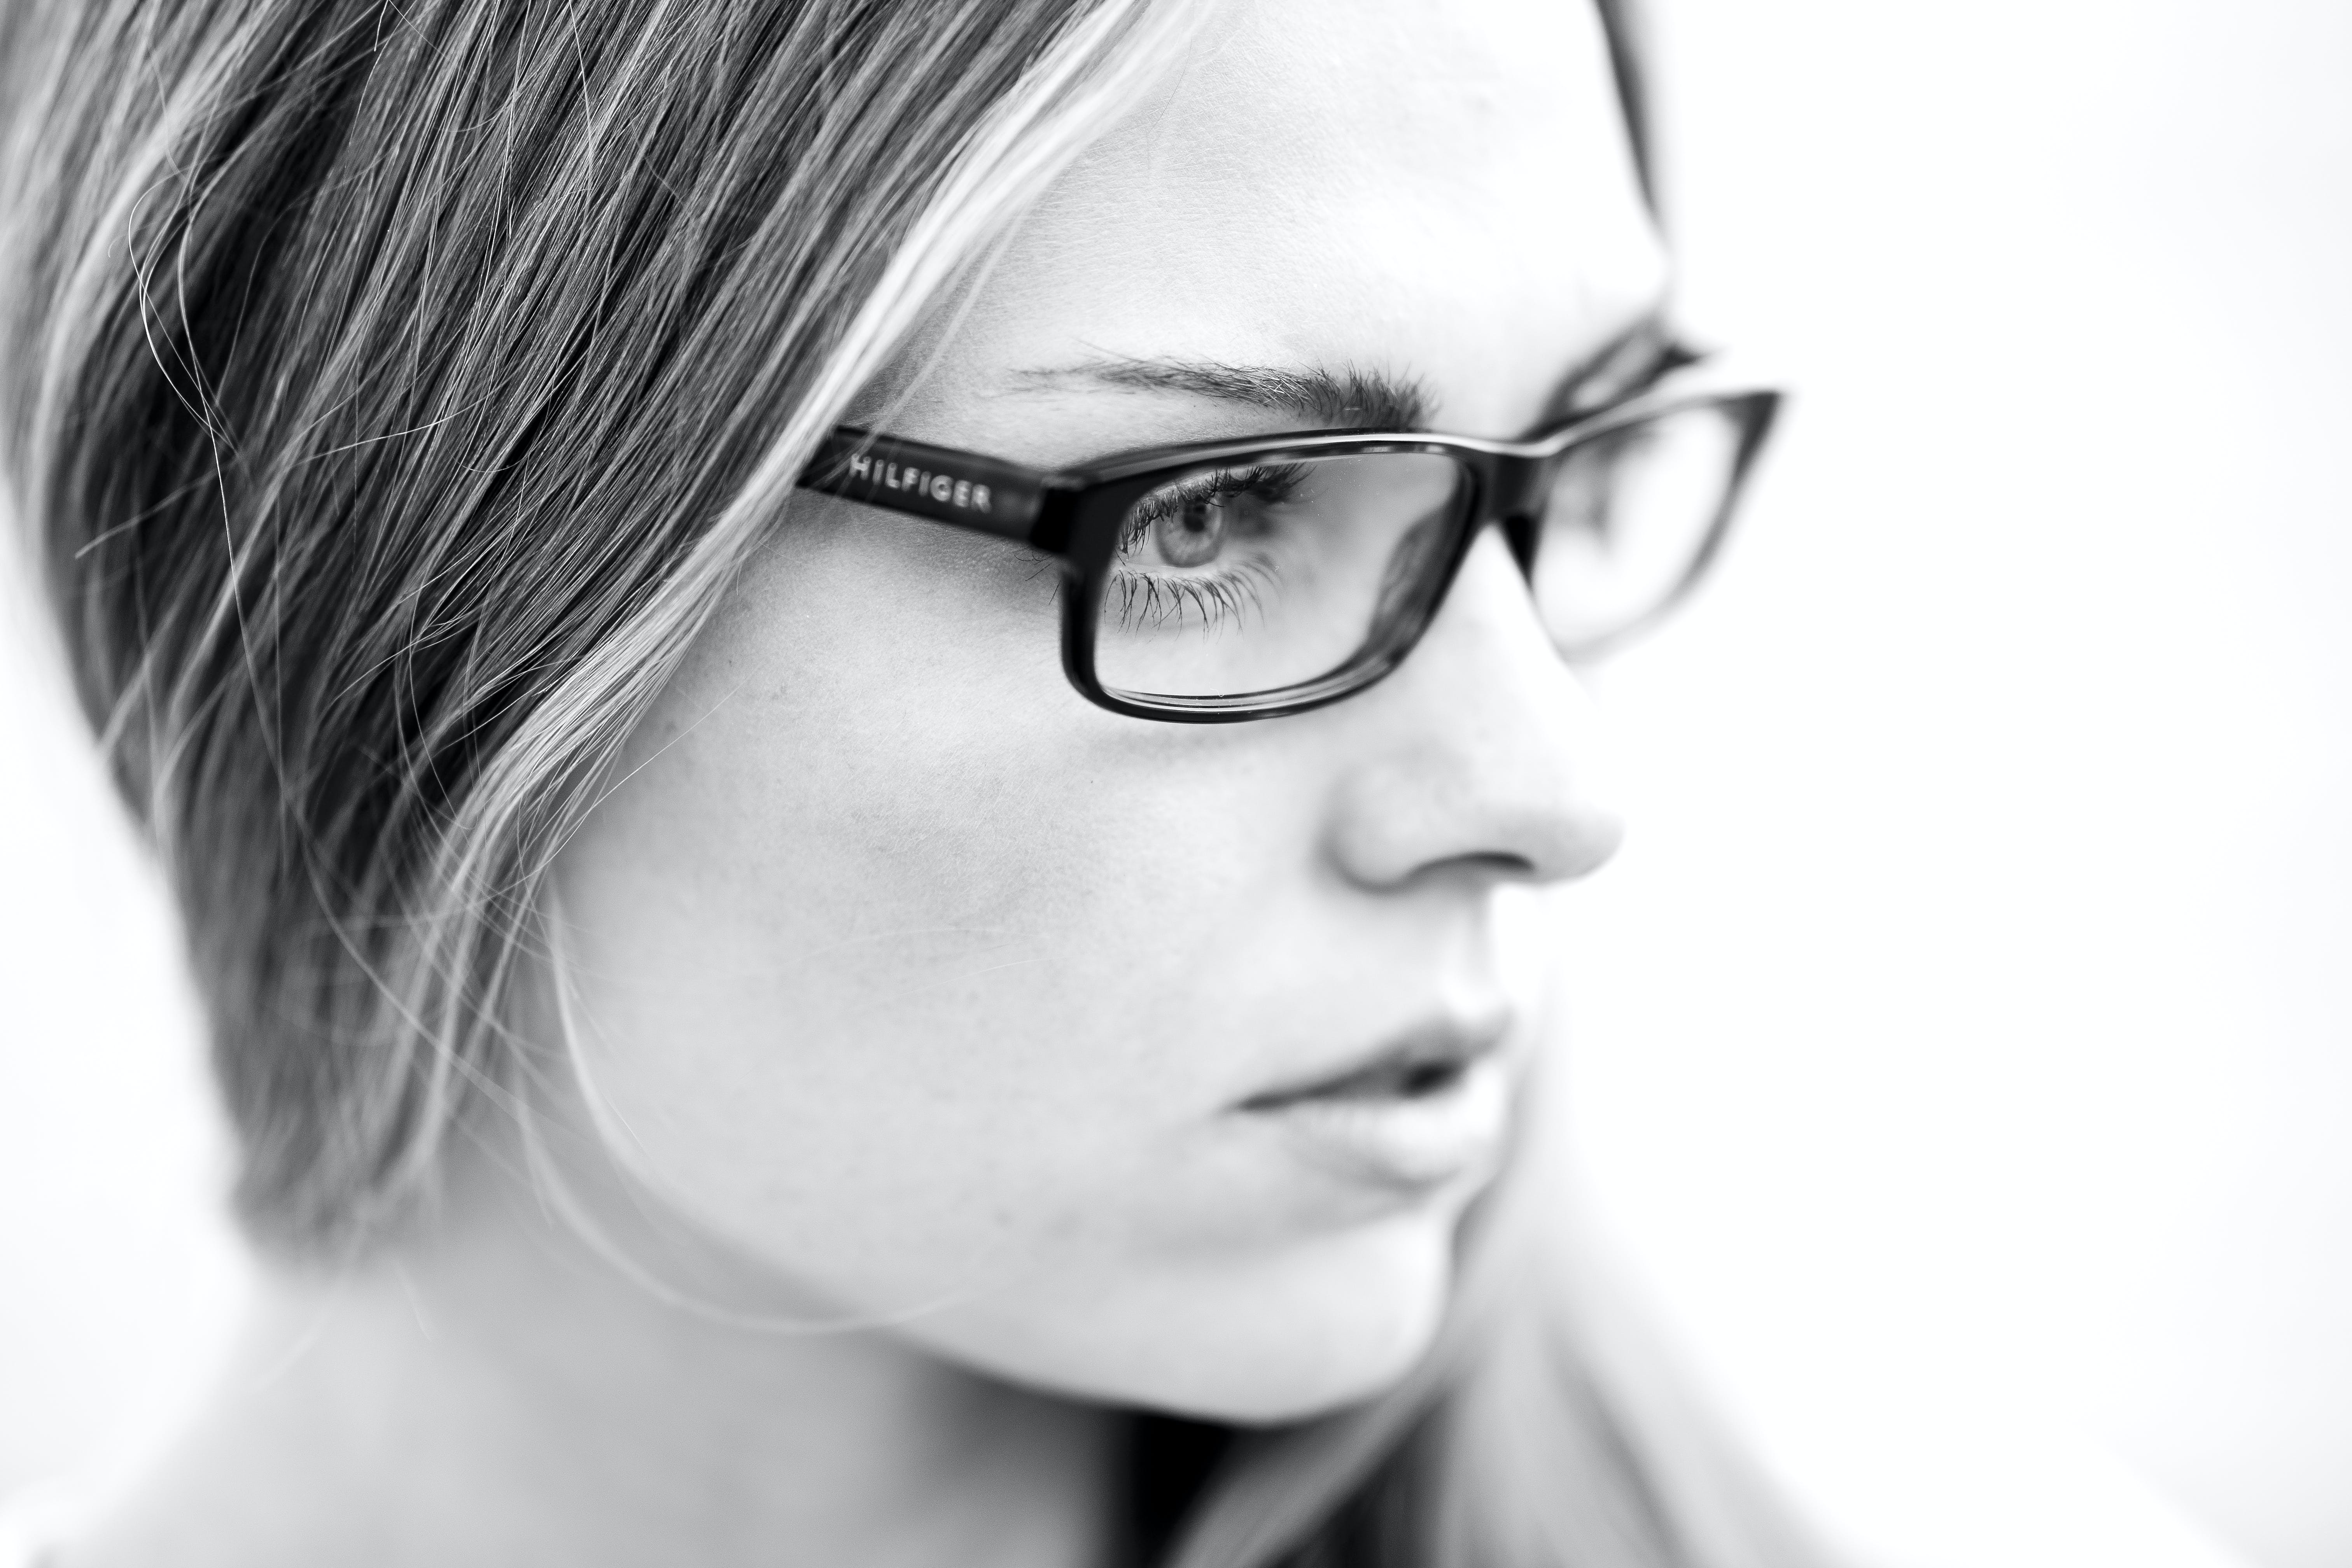 Grayscale Photography of Woman Wearing Eyeglasses